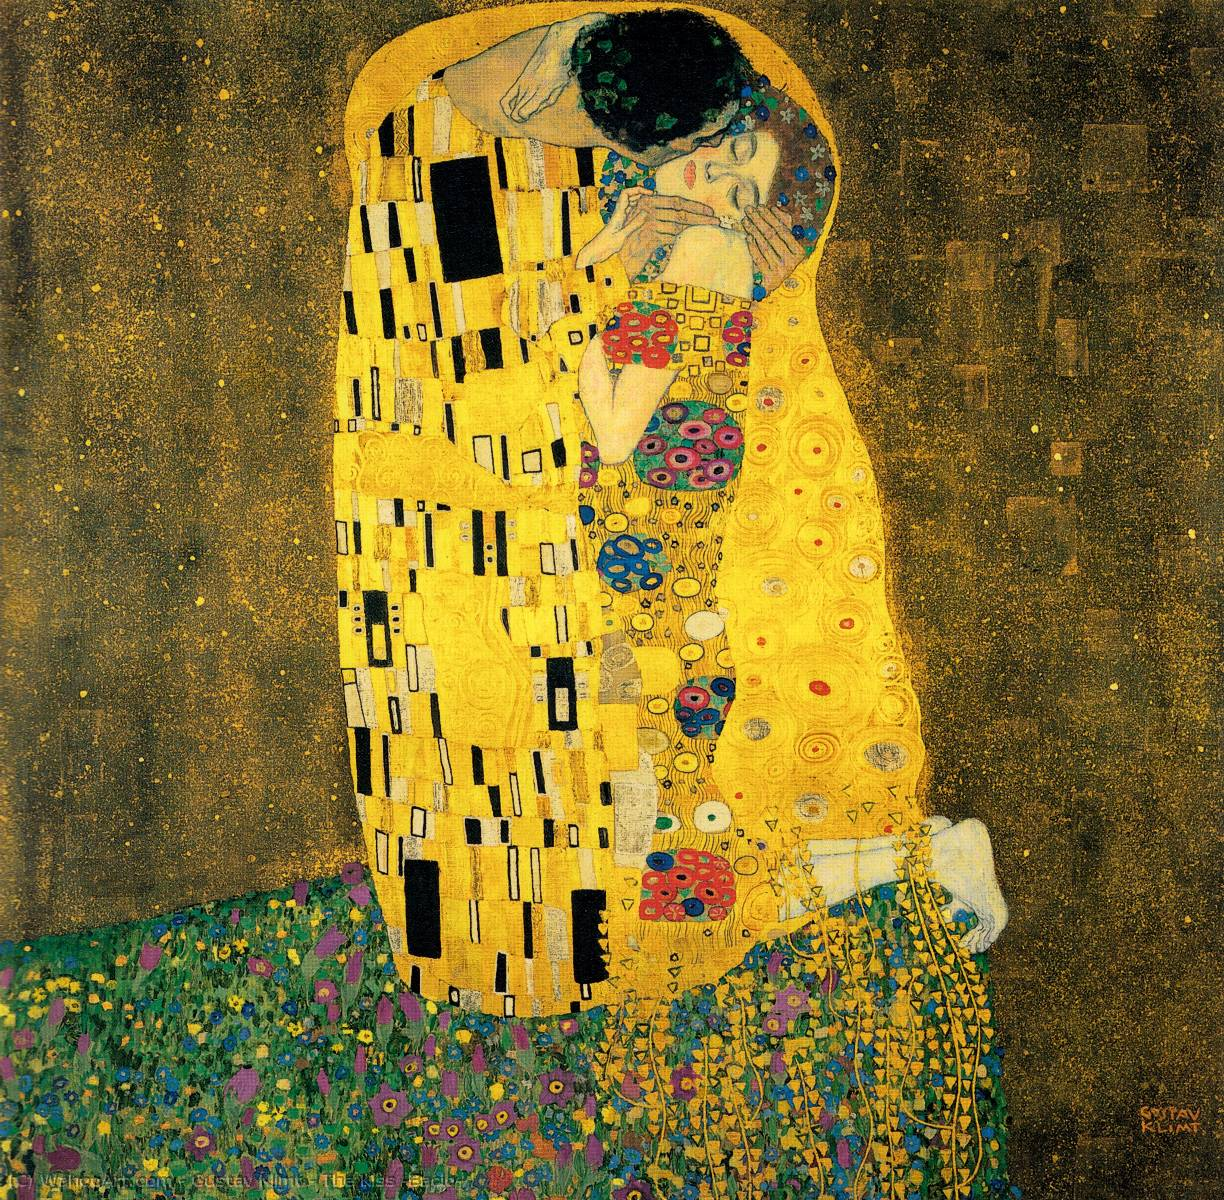 Order Paintings Reproductions : The Kiss (Bacio) by Gustav Klimt | Most-Famous-Paintings.com